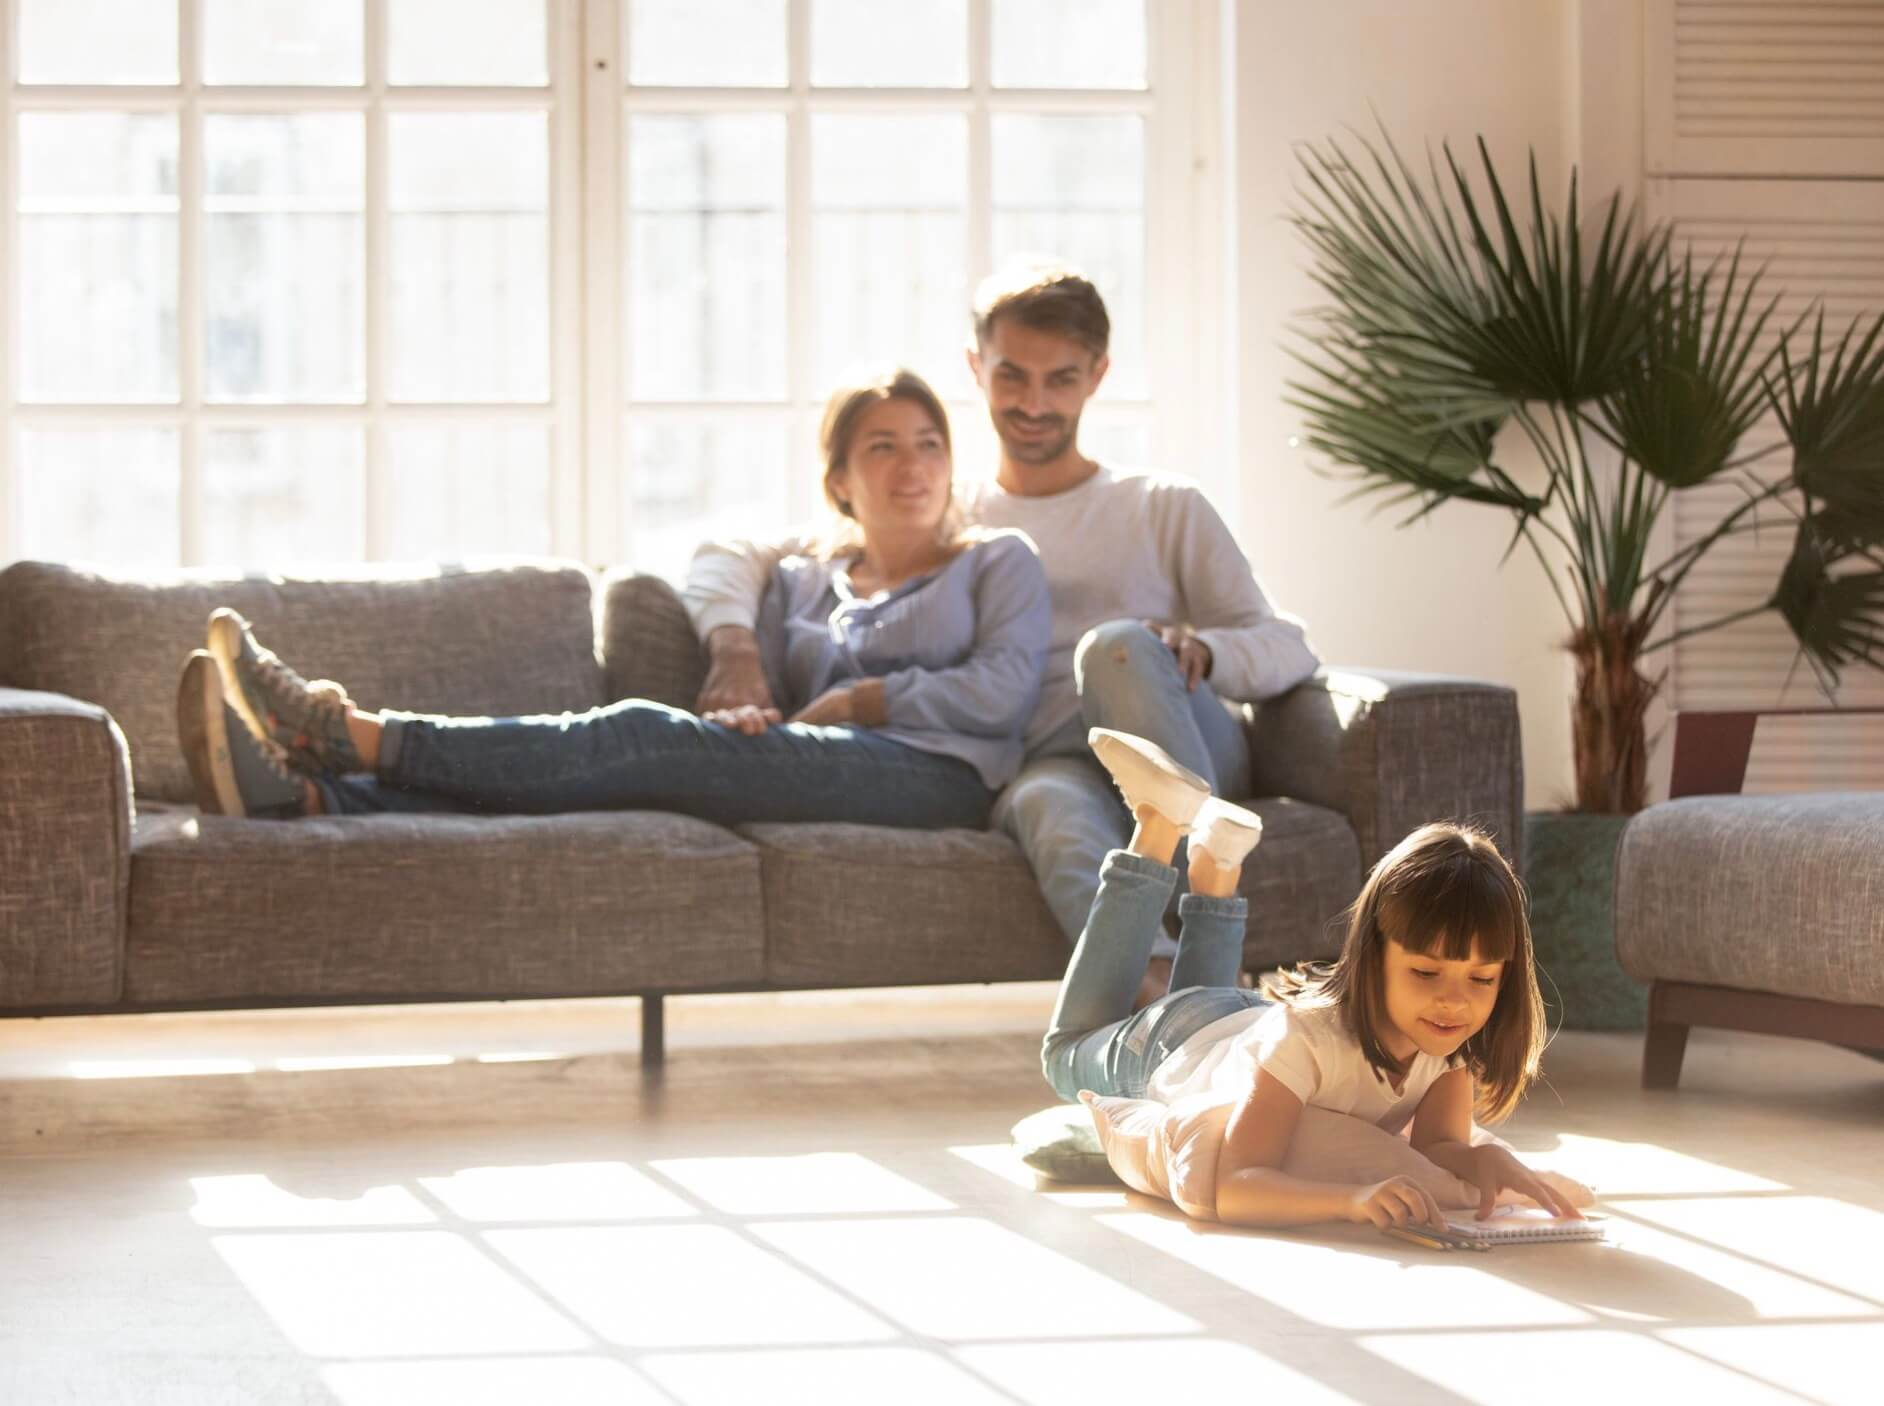 A family relaxing in a sun-drenched living room. The child lays on the floor reading a book while the parents watch happily from the couch.